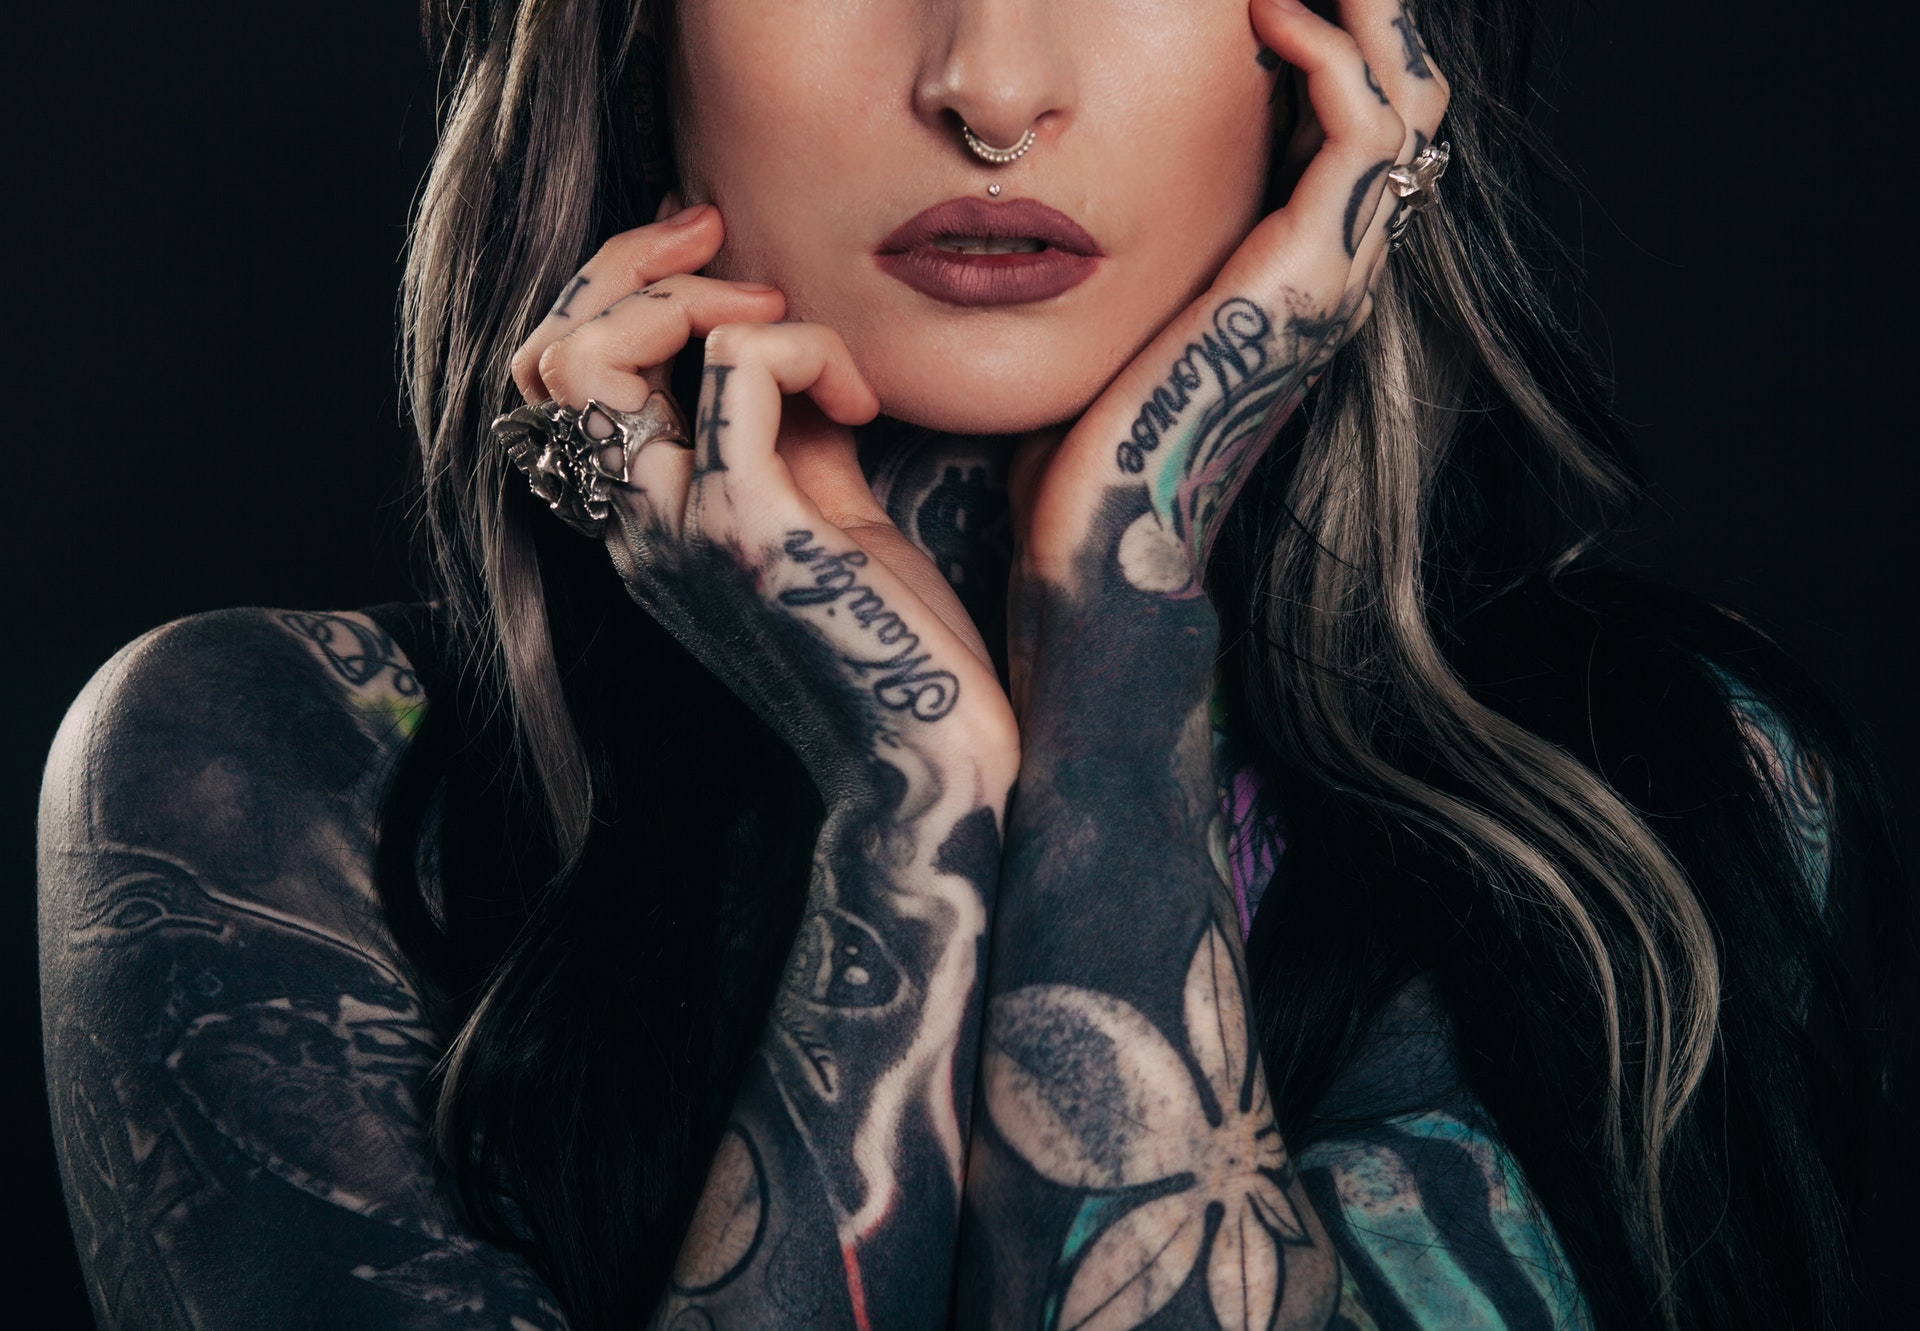 Photo by Clem Onojeghuo from Pexels  https://www.pexels.com/photo/woman-in-black-and-white-floral-tattoo-194074/